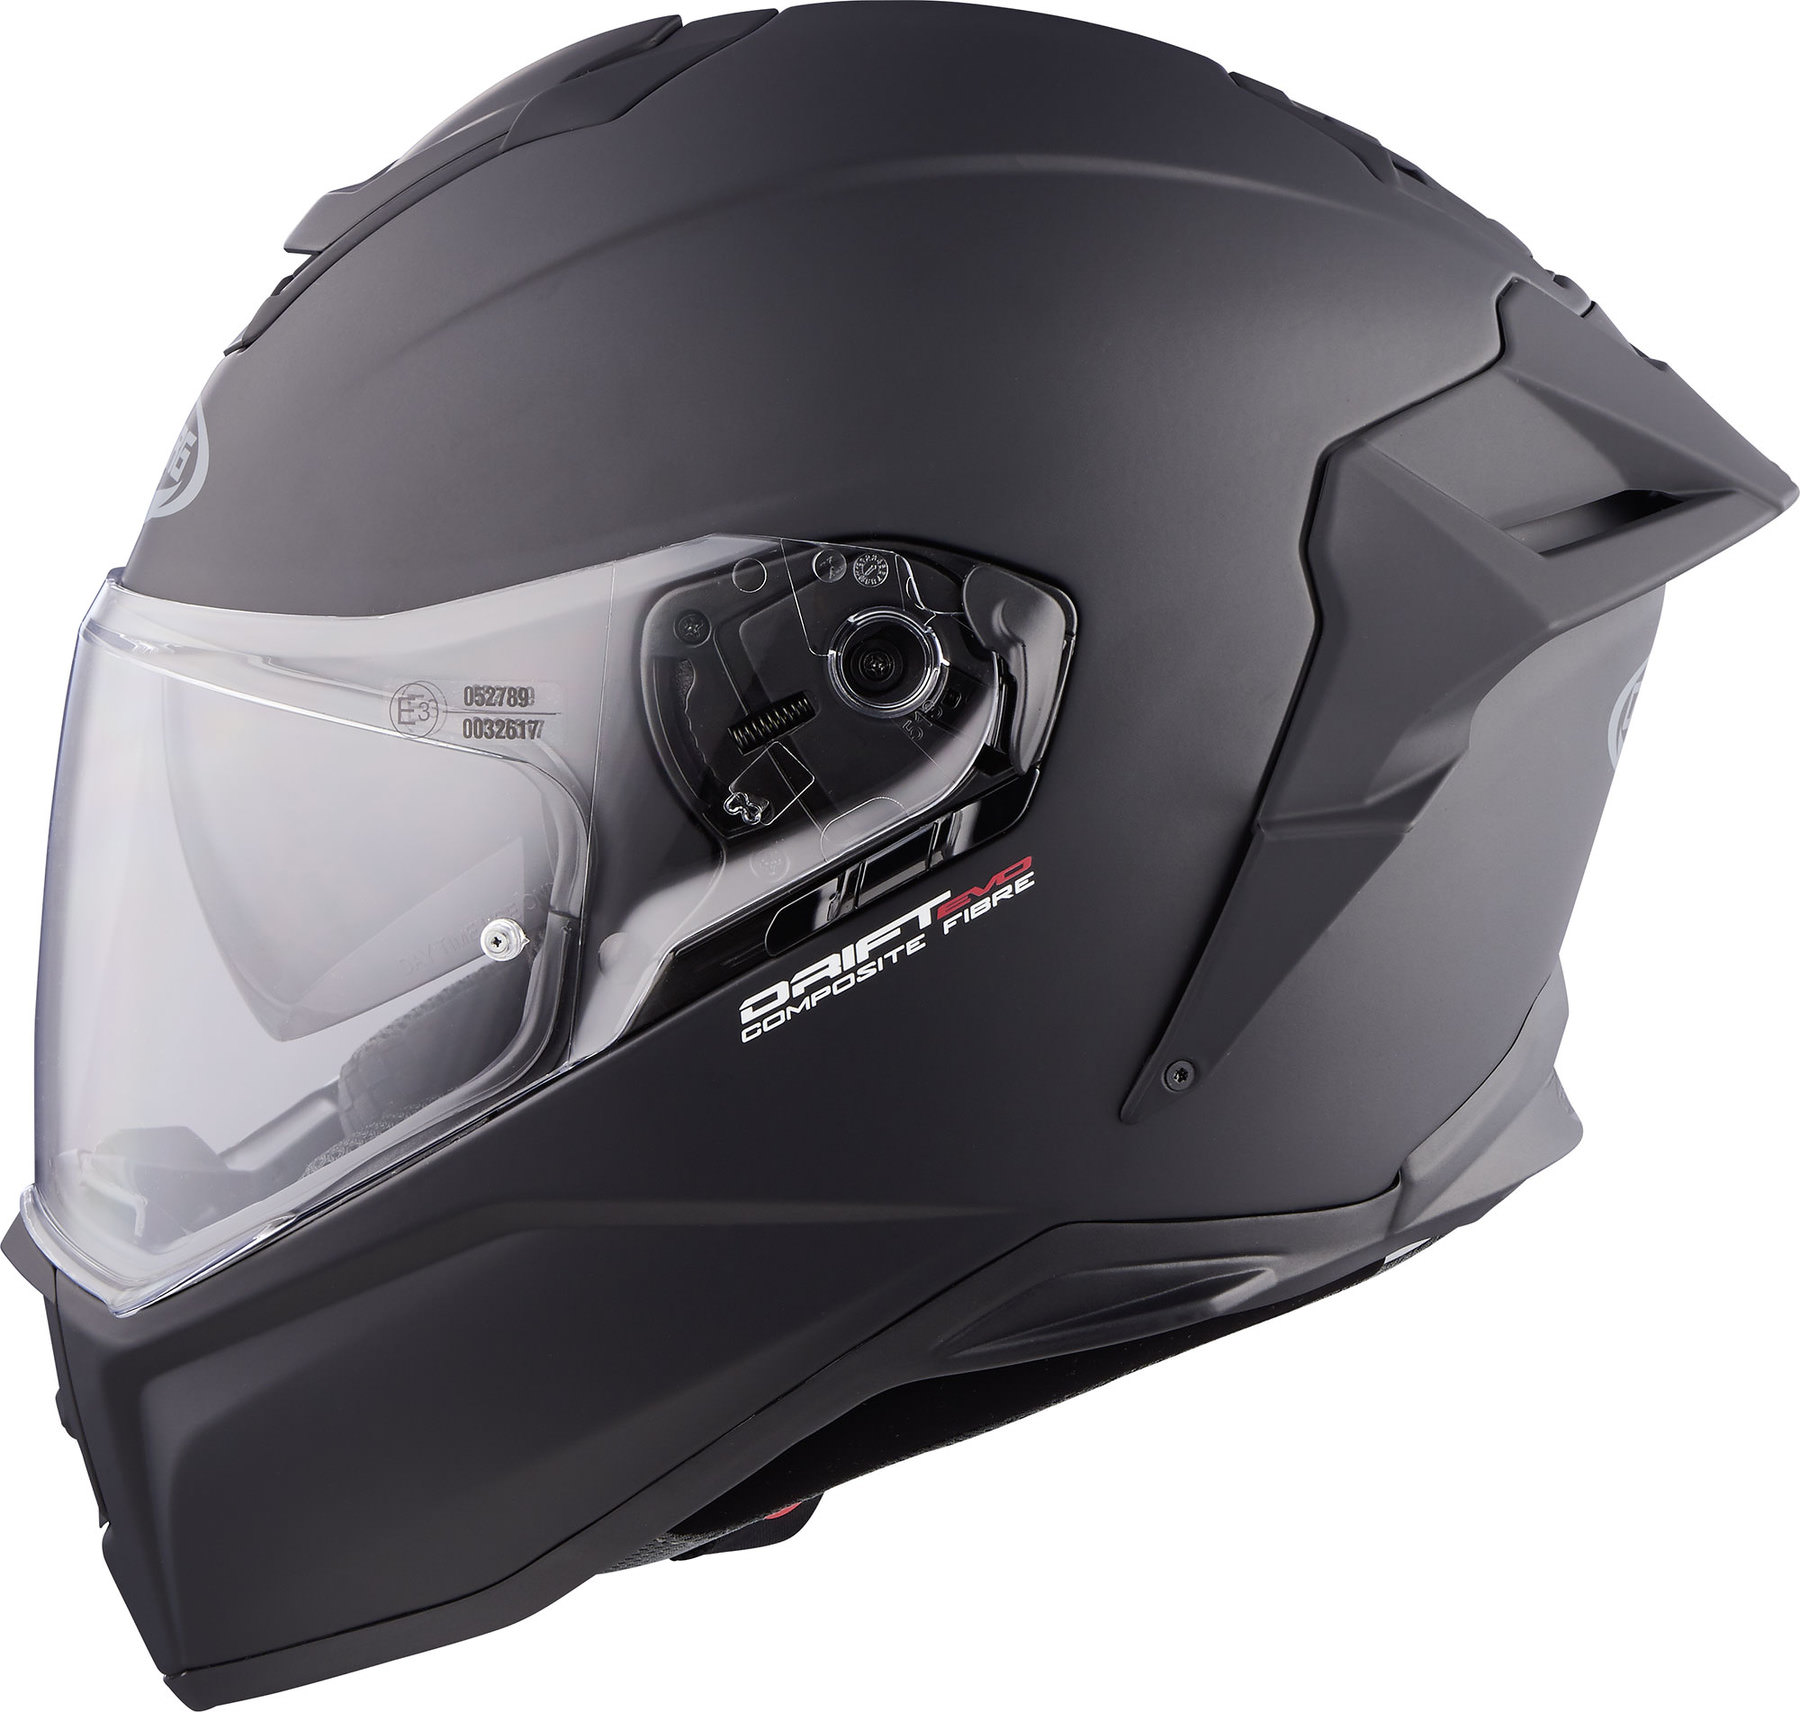 Buy Caberg Drift Evo Full-Face Helmet | Louis motorcycle clothing and  technology